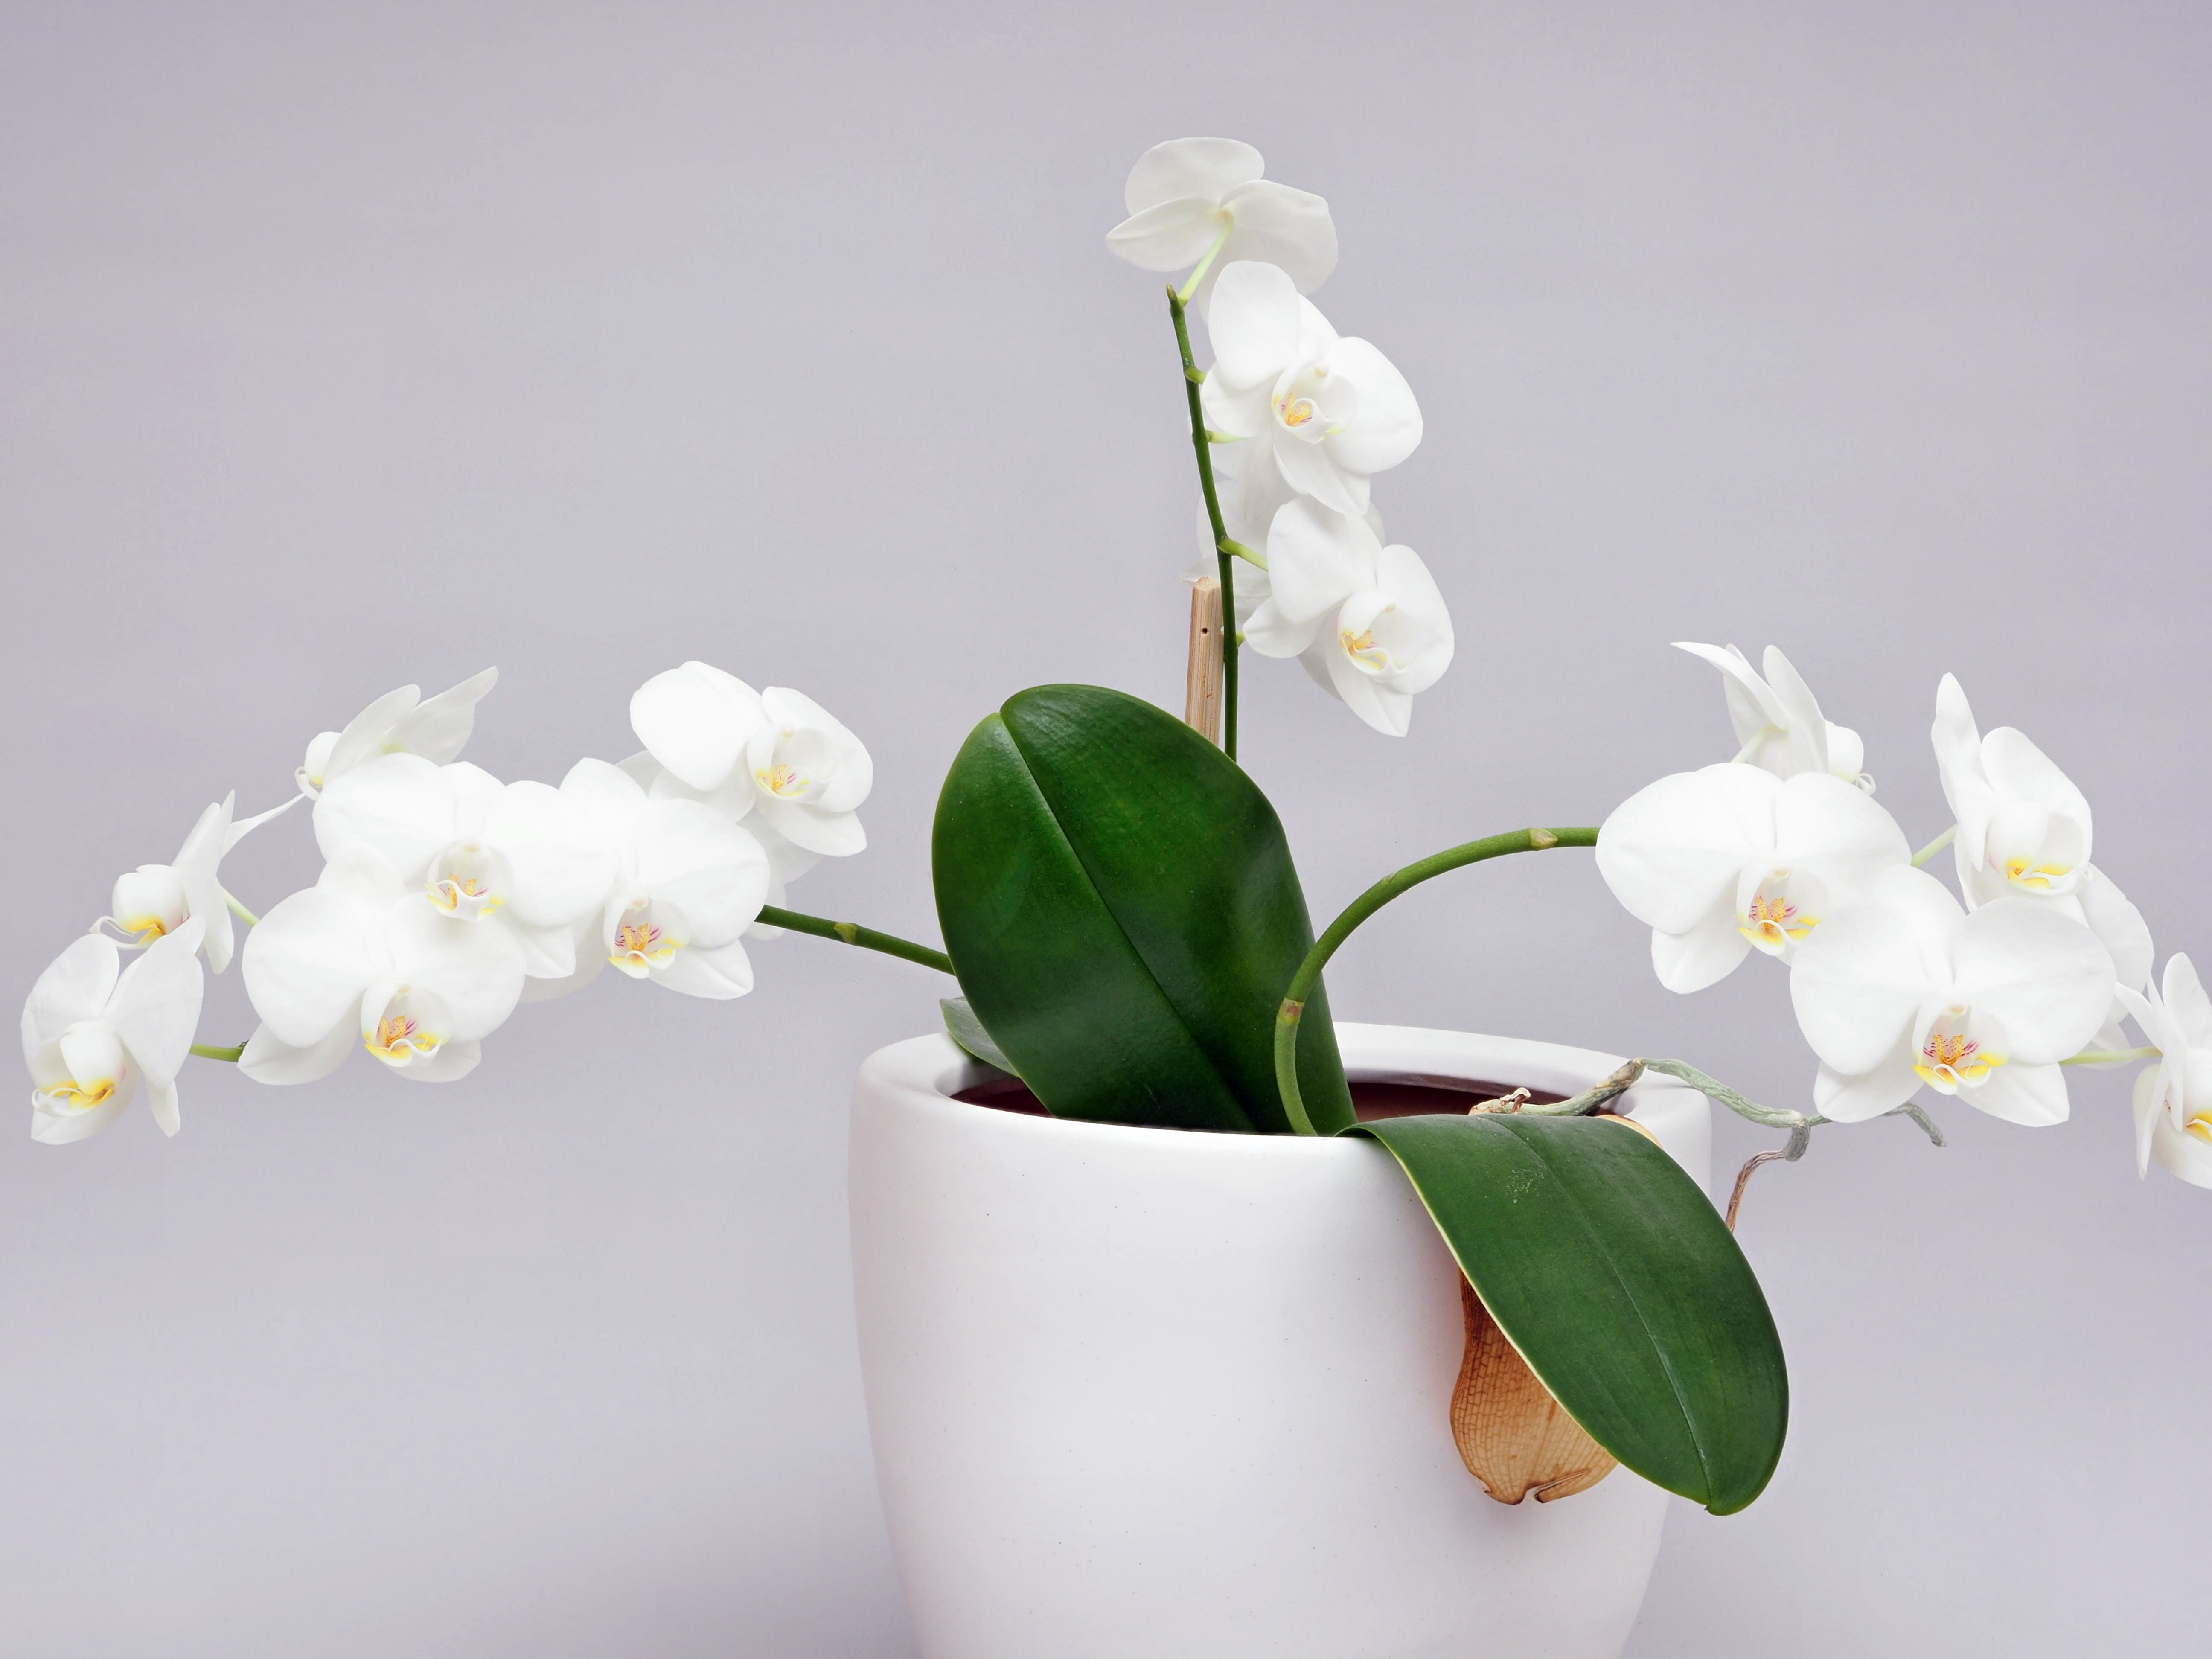 This should be Phalaenopsis-2.jpeg.  Is it missing?